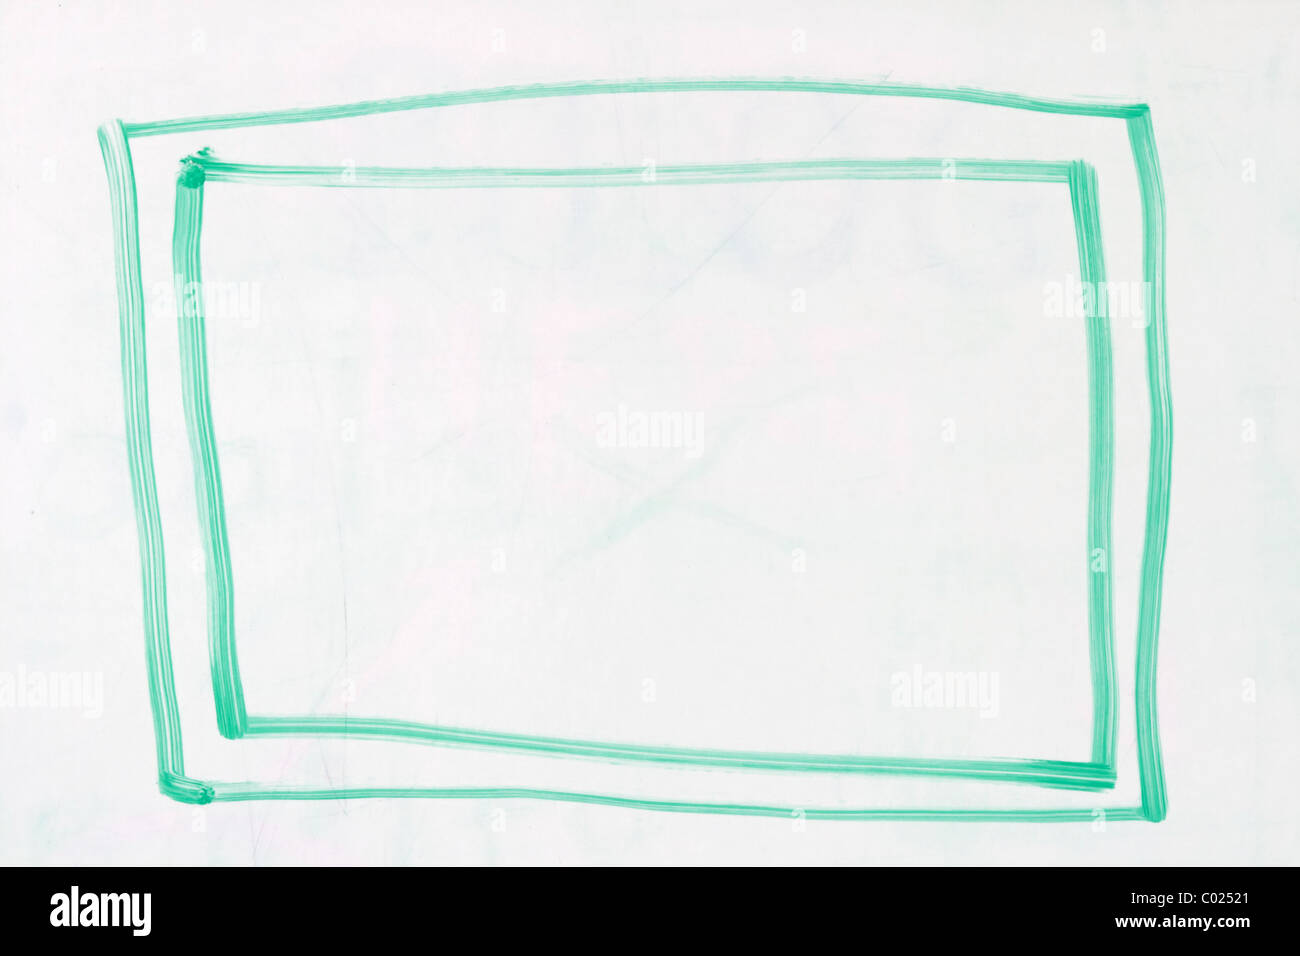 box with double outline in green dry erase marker on a used white board - Stock Image